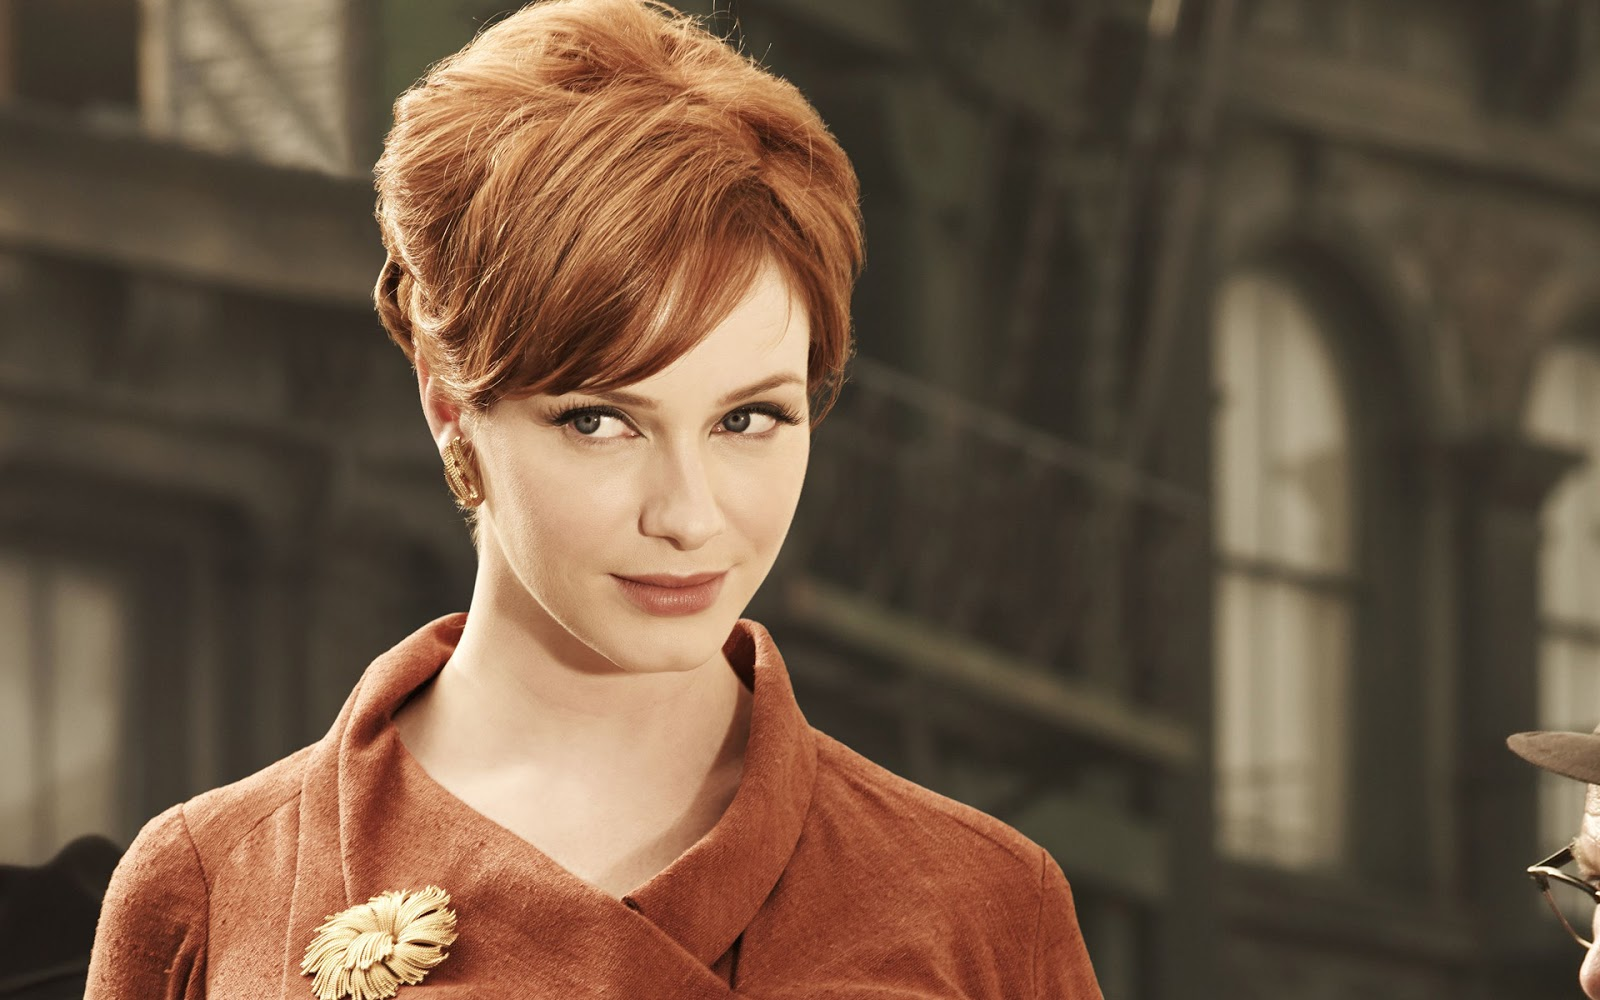 christina hendricks hd wallpaper 2013 christina hendricks hd wallpaper 1600x1000